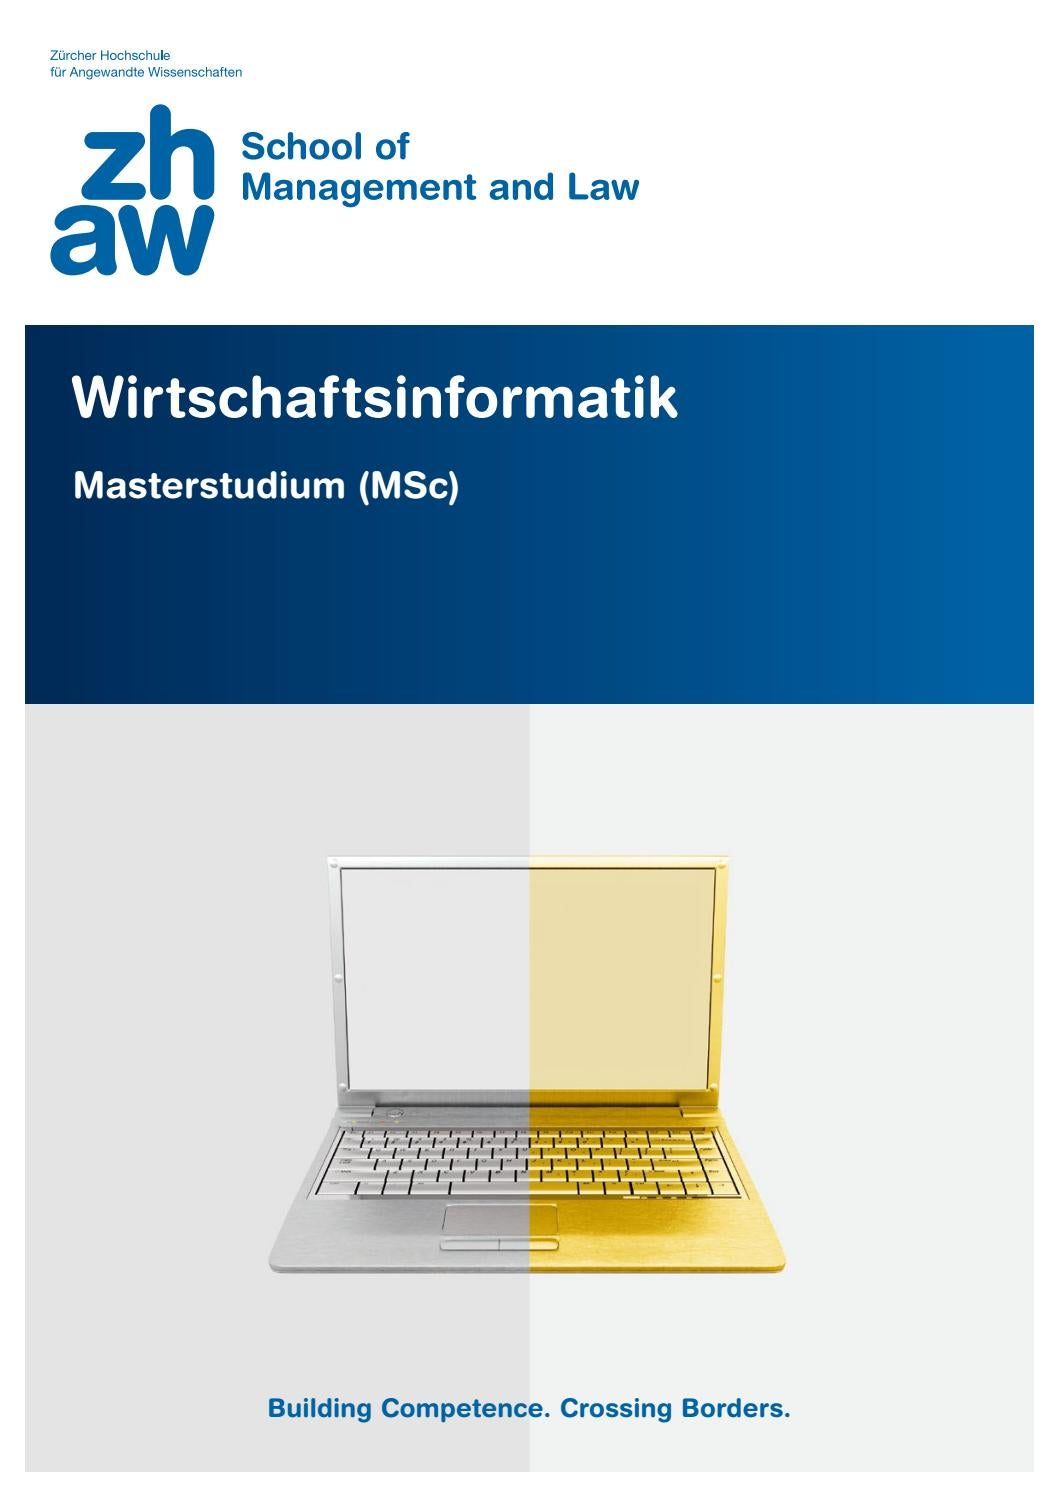 Master of Science in Wirtschaftsinformatik by ZHAW School ...